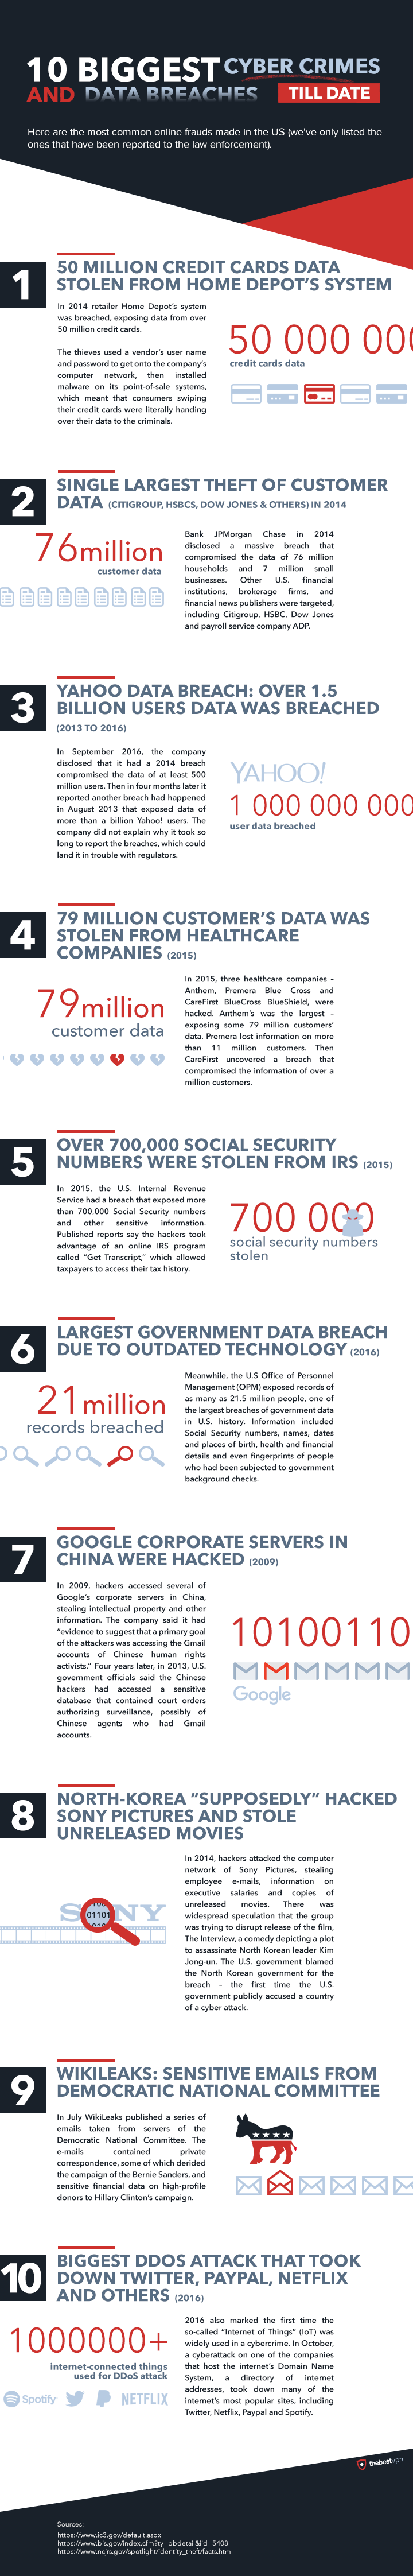 10 biggest cyber crimes and data breaches till date (Infographic)